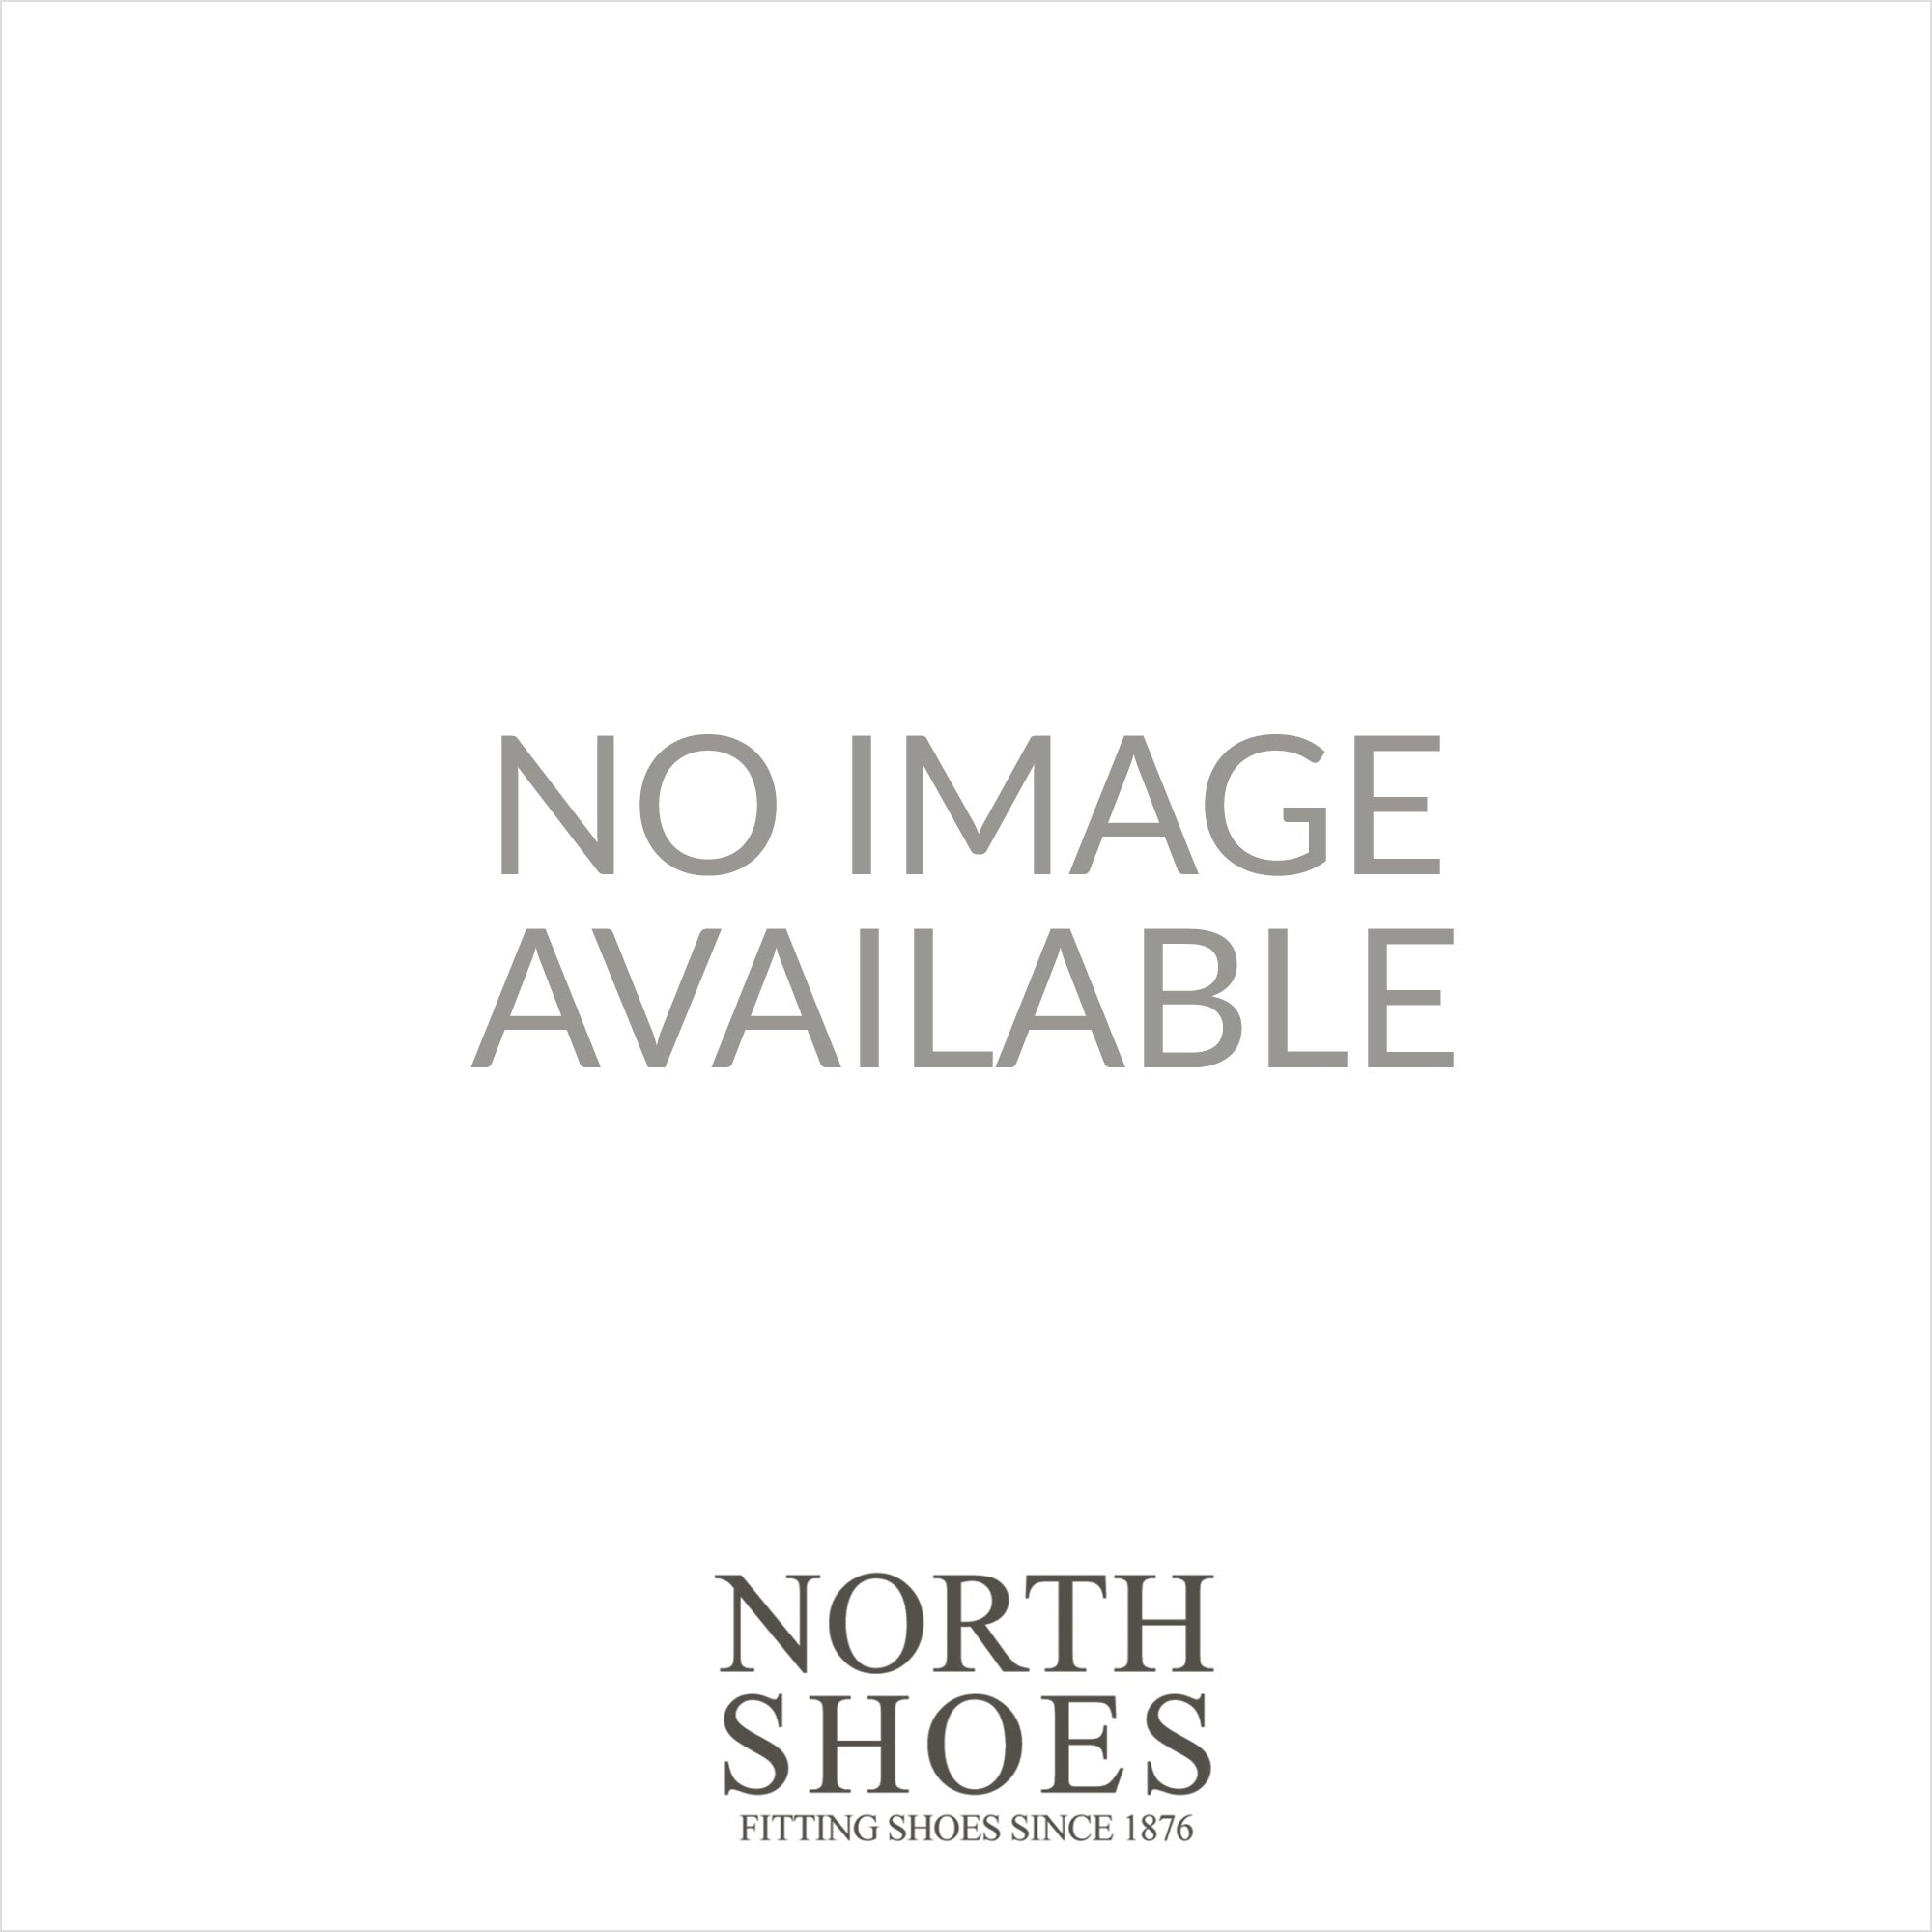 cbe77775e716 Clarks Un Haven Strap Black Leather Womens Mary Jane Shoe - Clarks from  North Shoes UK